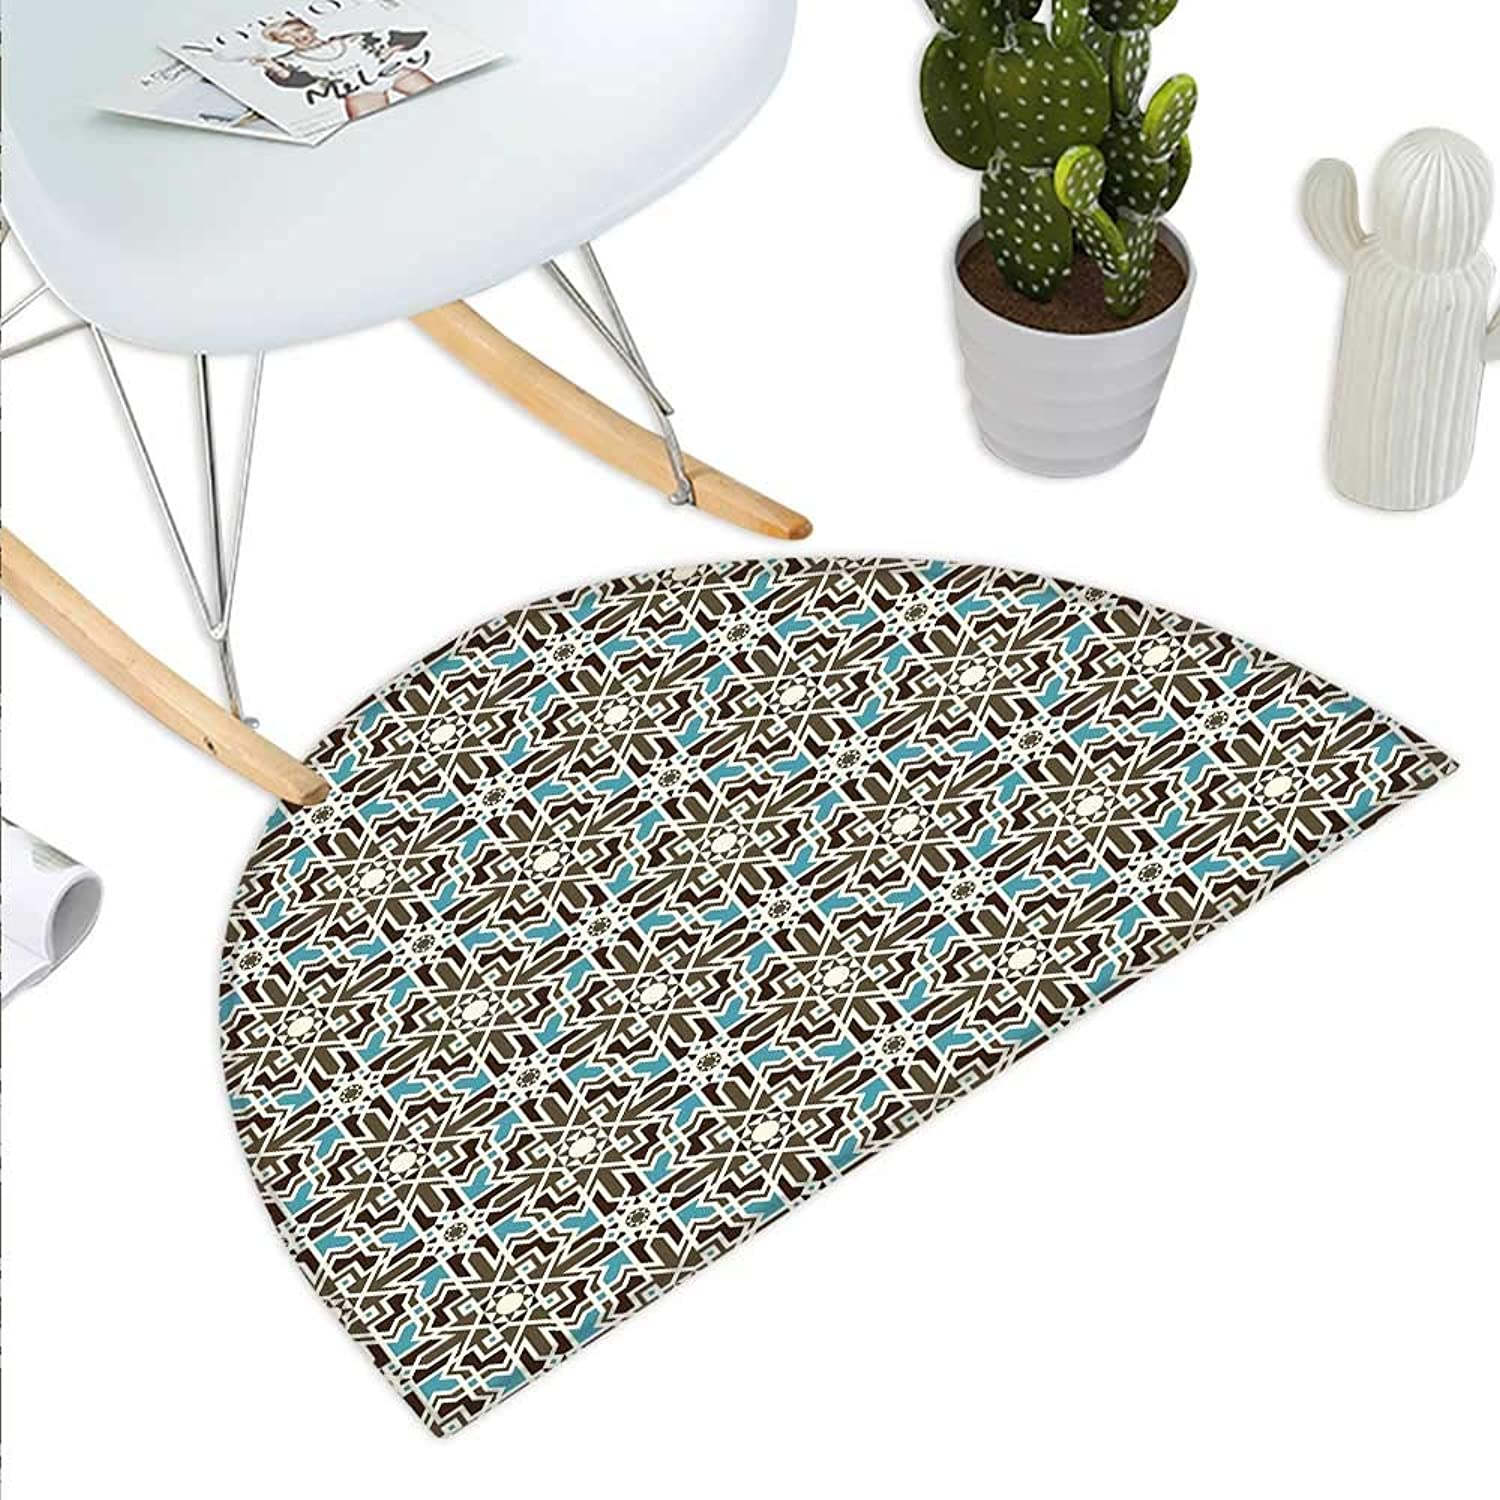 Brown and bluee Semicircle Doormat Arabesque Middle Eastern Inspired Mgoldccan Star Pattern Ornament Halfmoon doormats H 35.4  xD 53.1  Taupe Pale bluee Brown